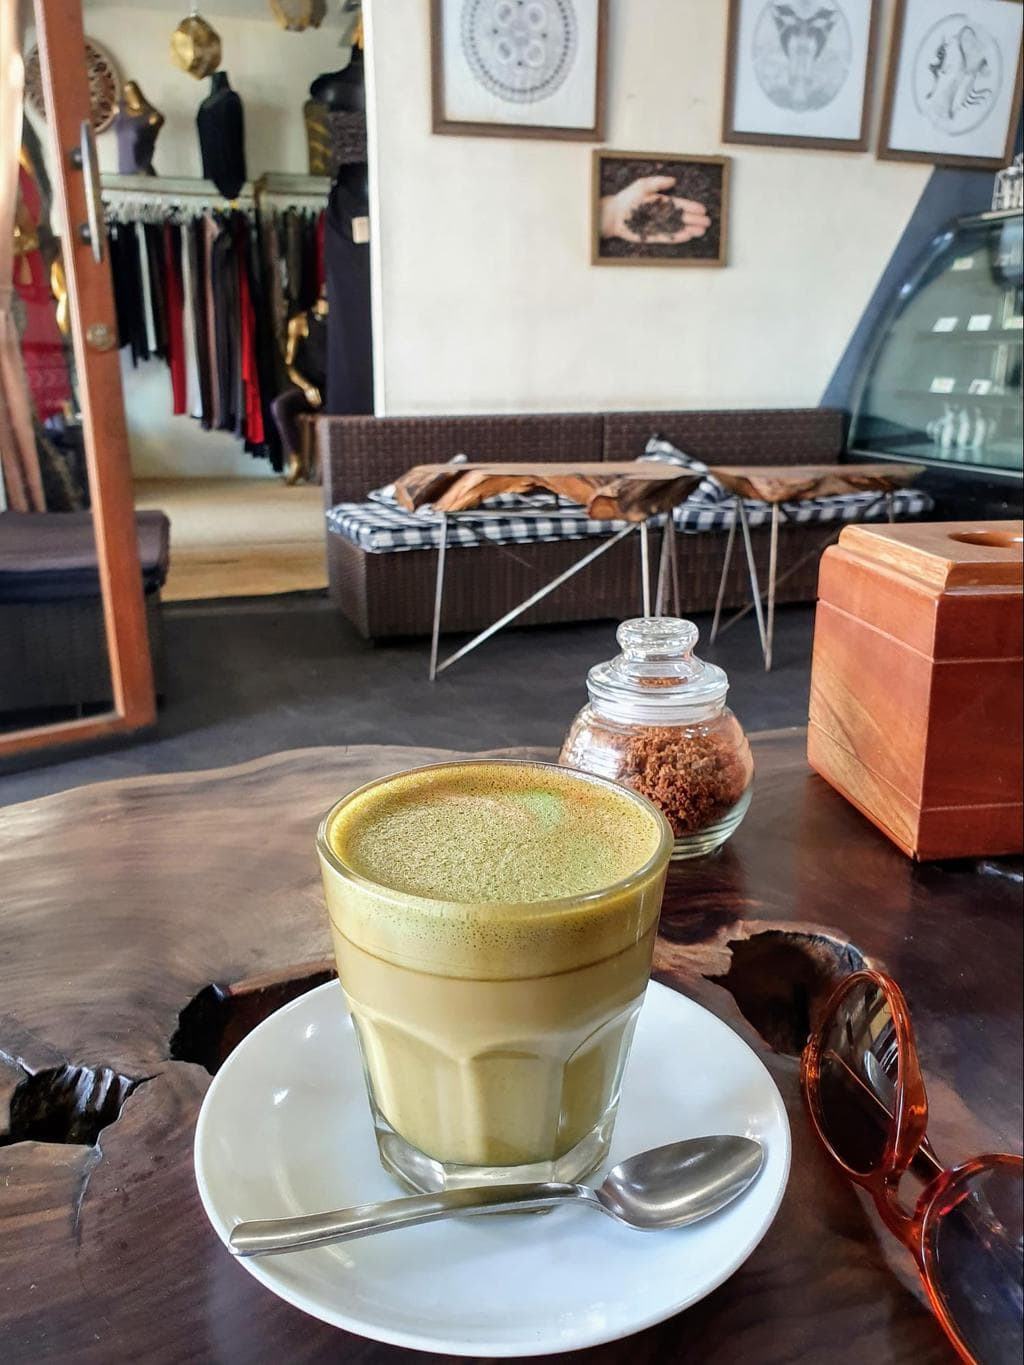 F.R.E.A.K. Coffee matcha latte